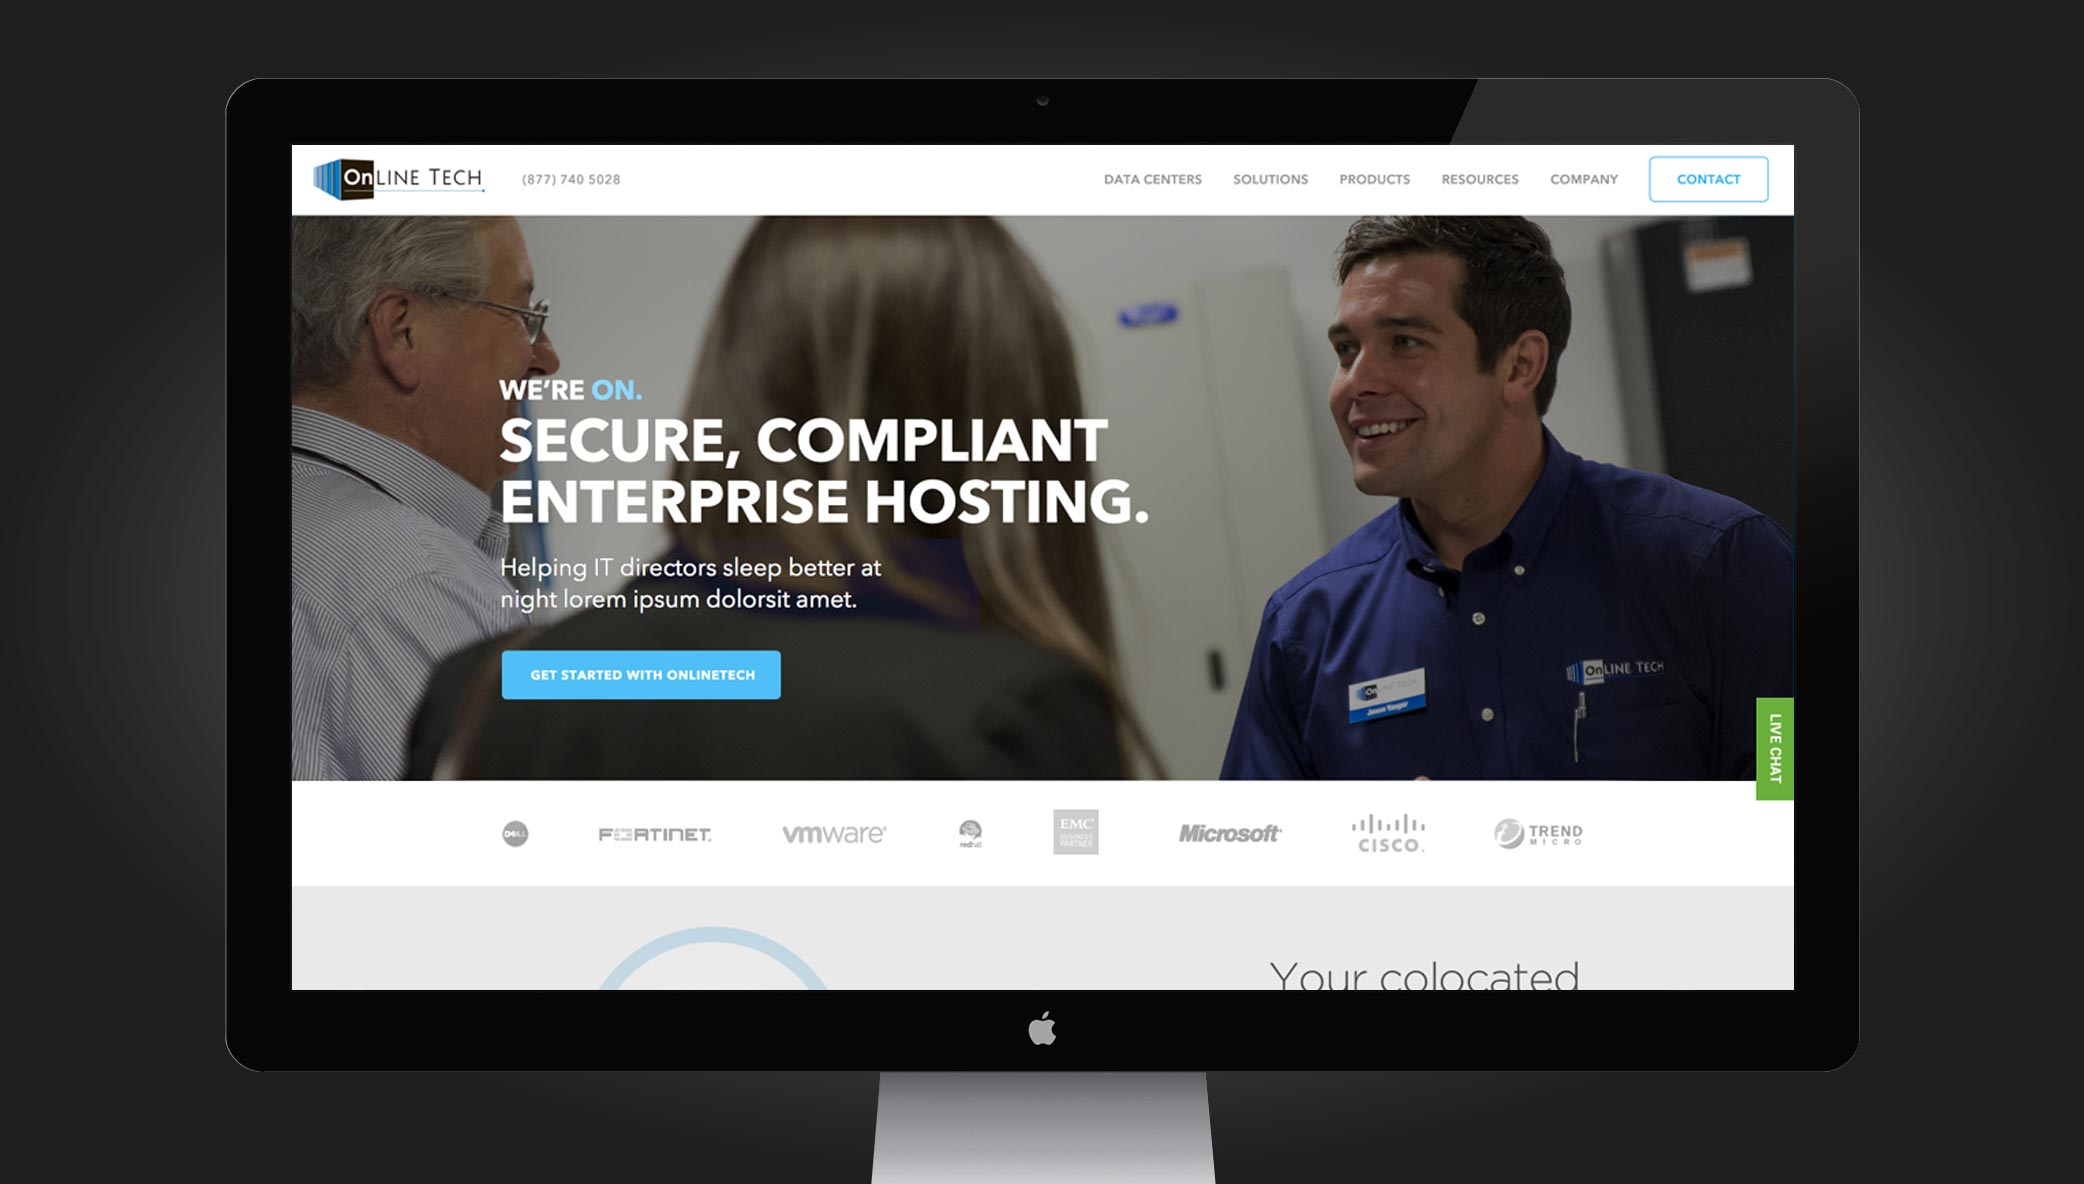 New Web Design for Michigan based OnlineTech